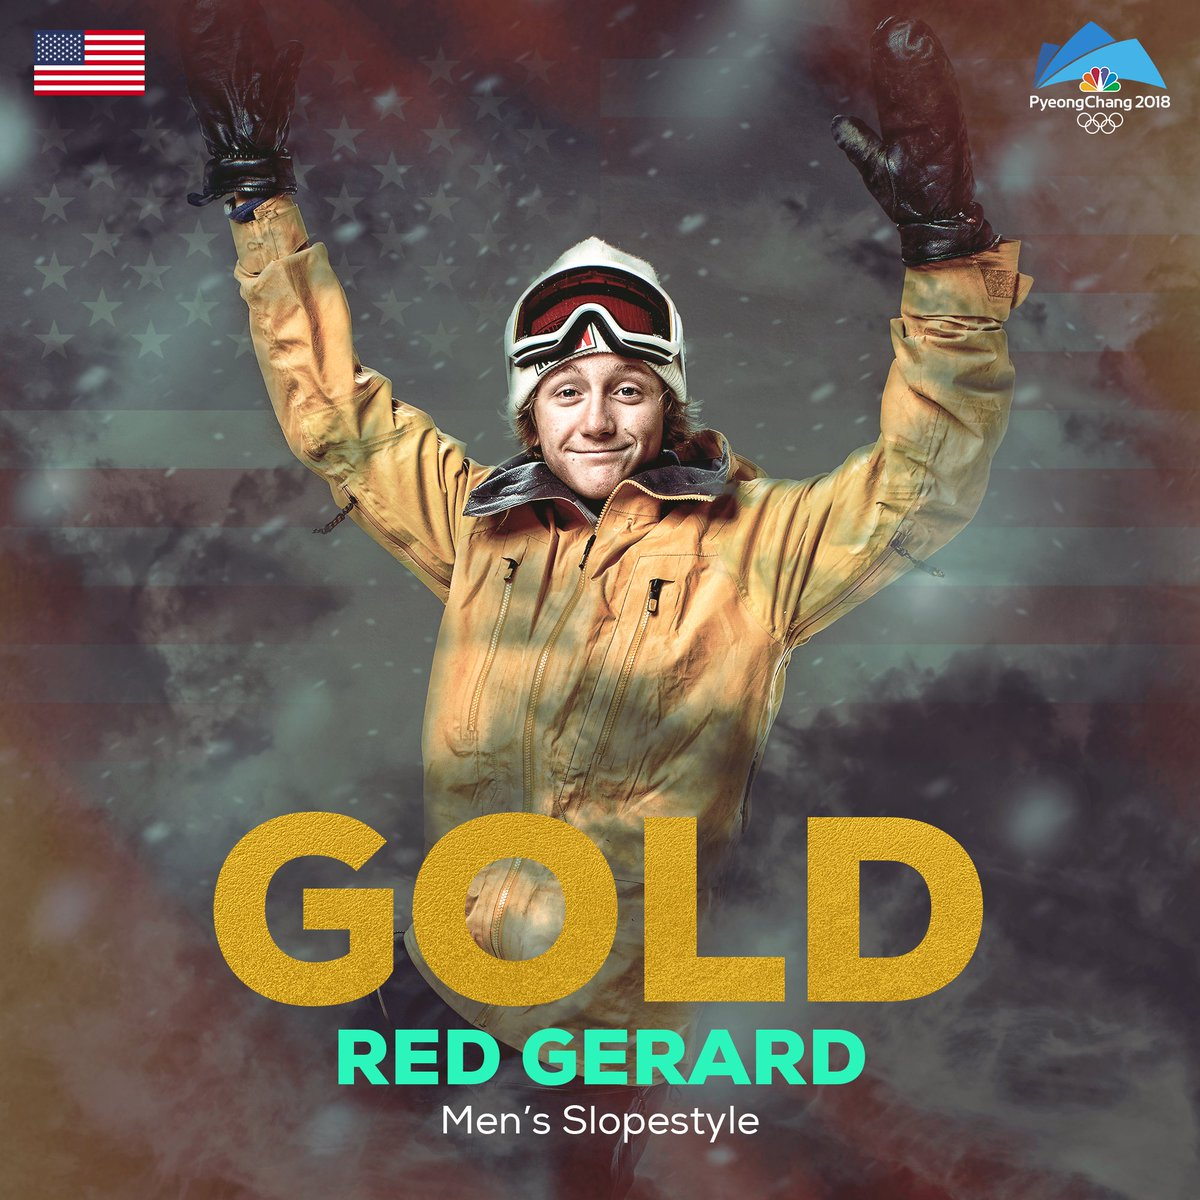 RT @NBCOlympics: It's a gold for @RedmondGerard!  He delivers @TeamUSA's first medal of the 2018 #WinterOlympics https://t.co/yYJxr13ApM